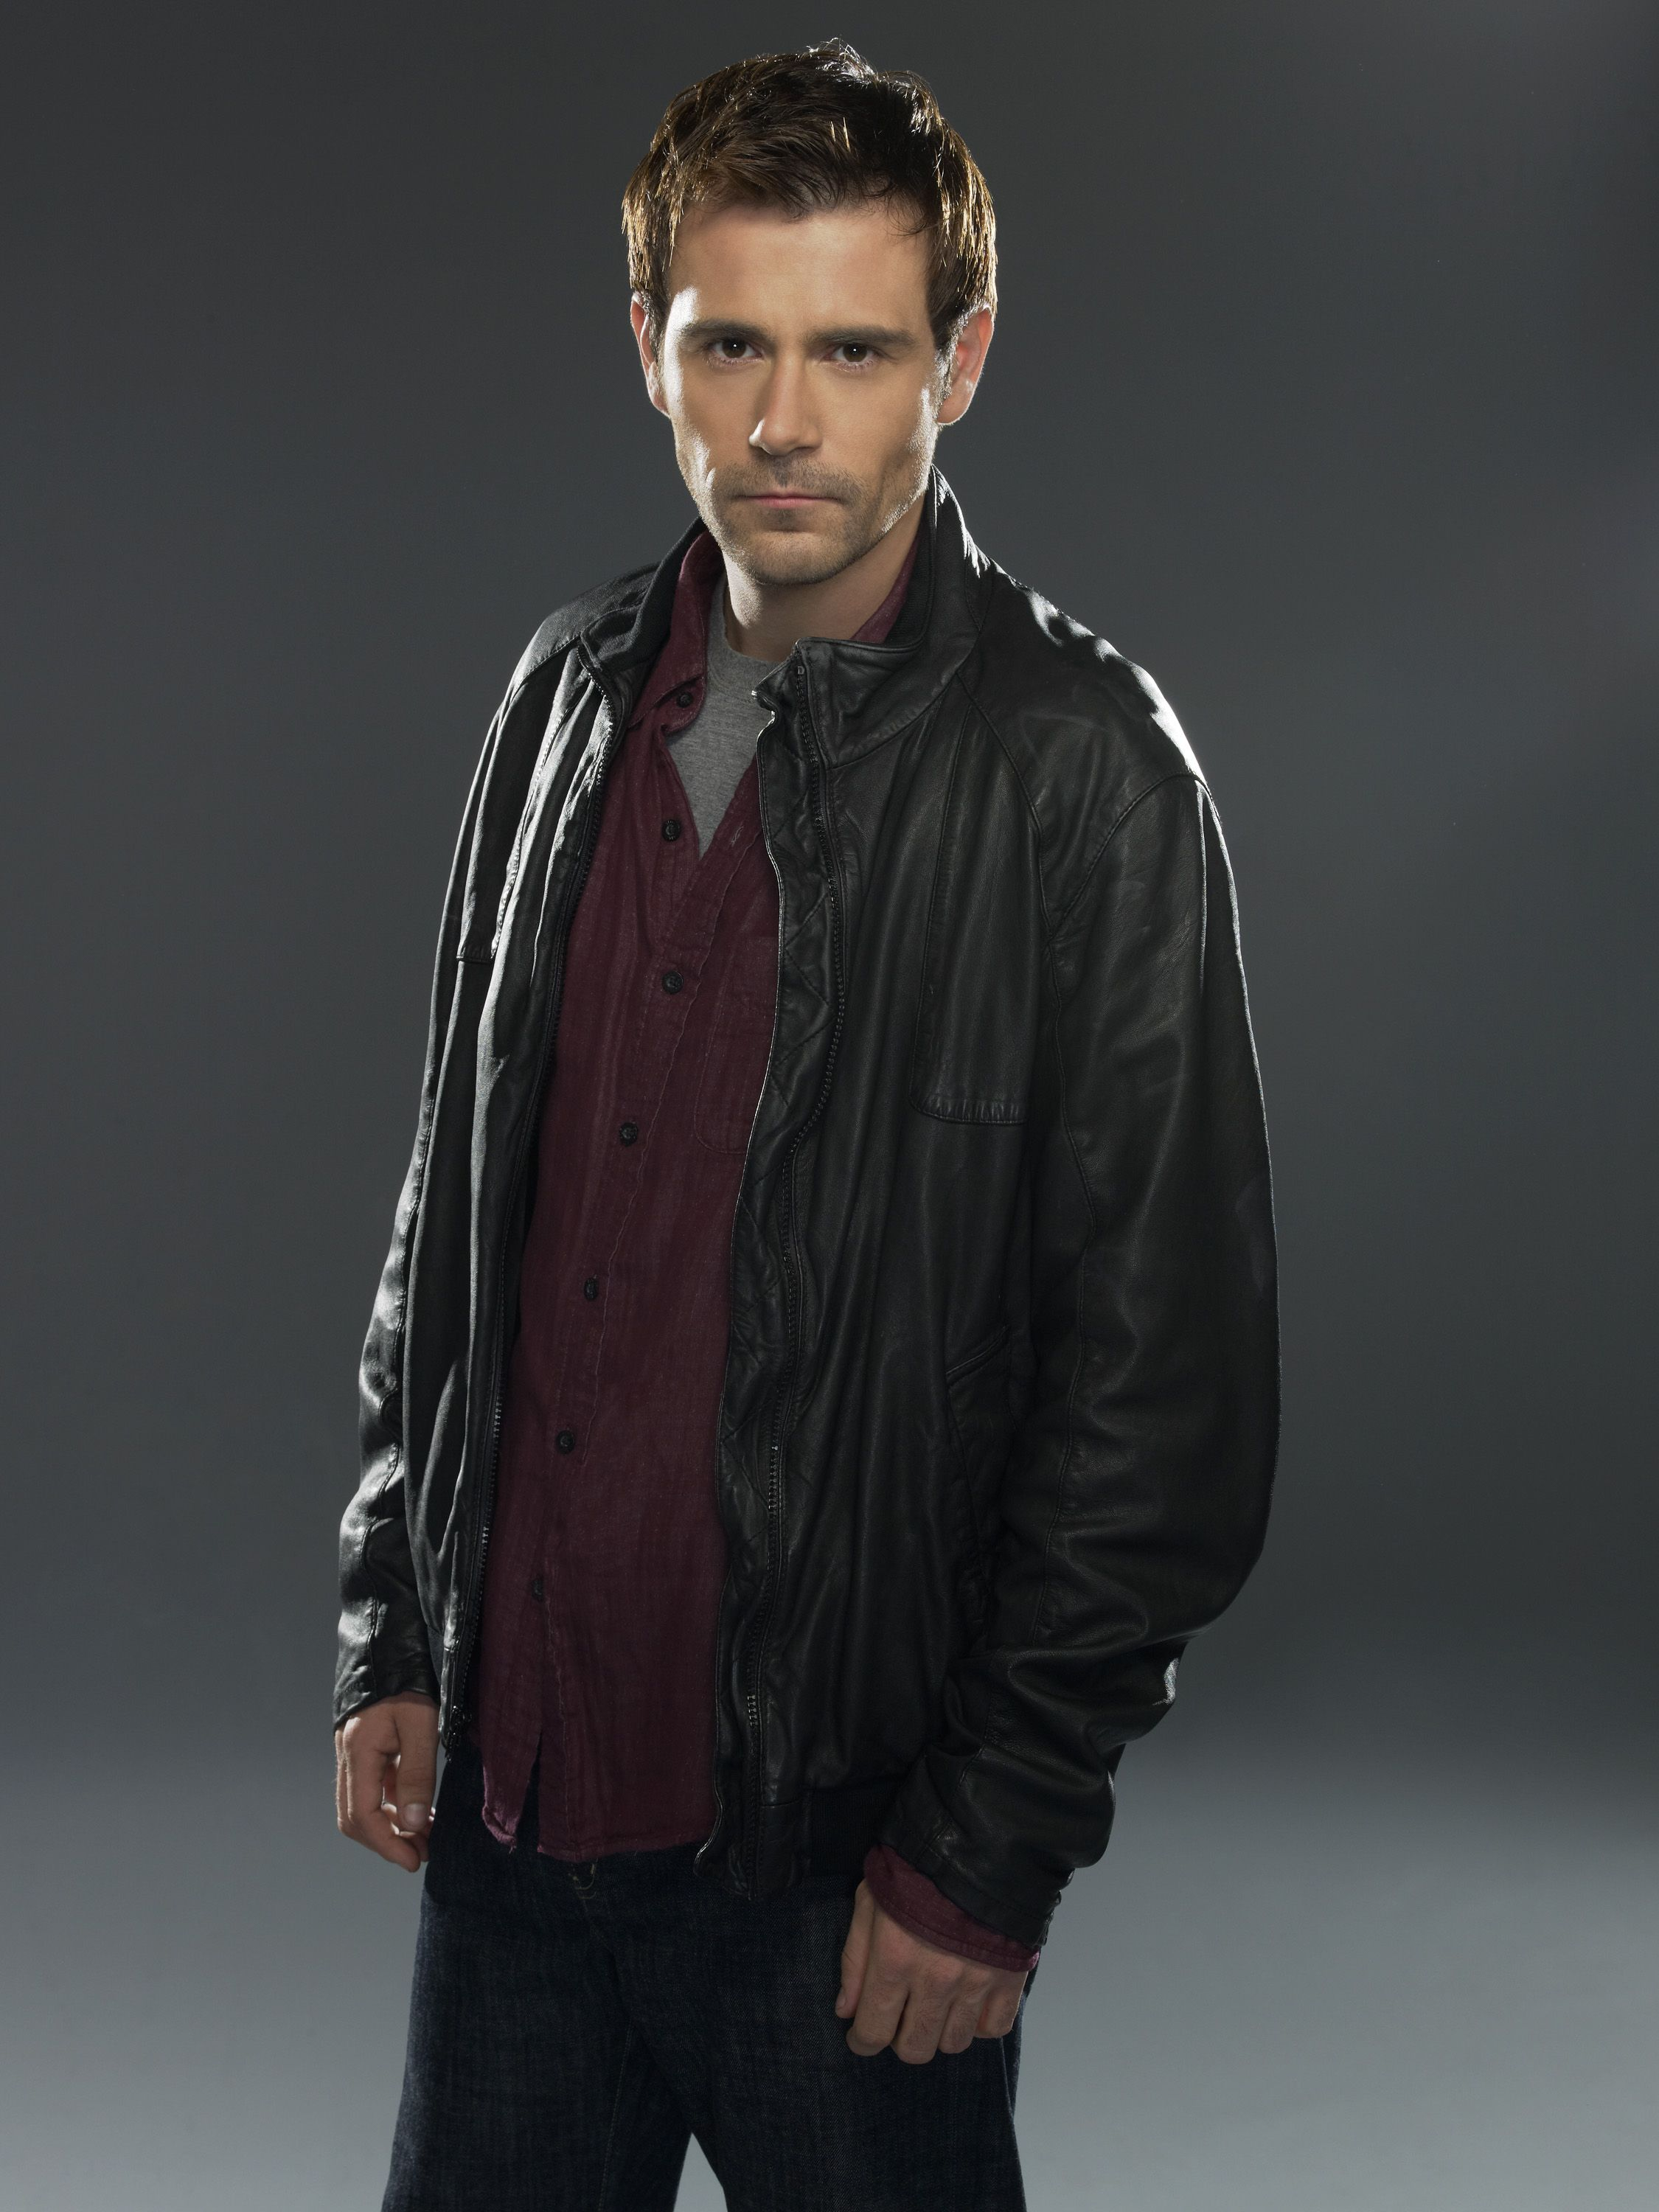 Criminal Minds Suspect Behavior Promo Matt Ryan Matt Ryan Constantine Criminal Minds